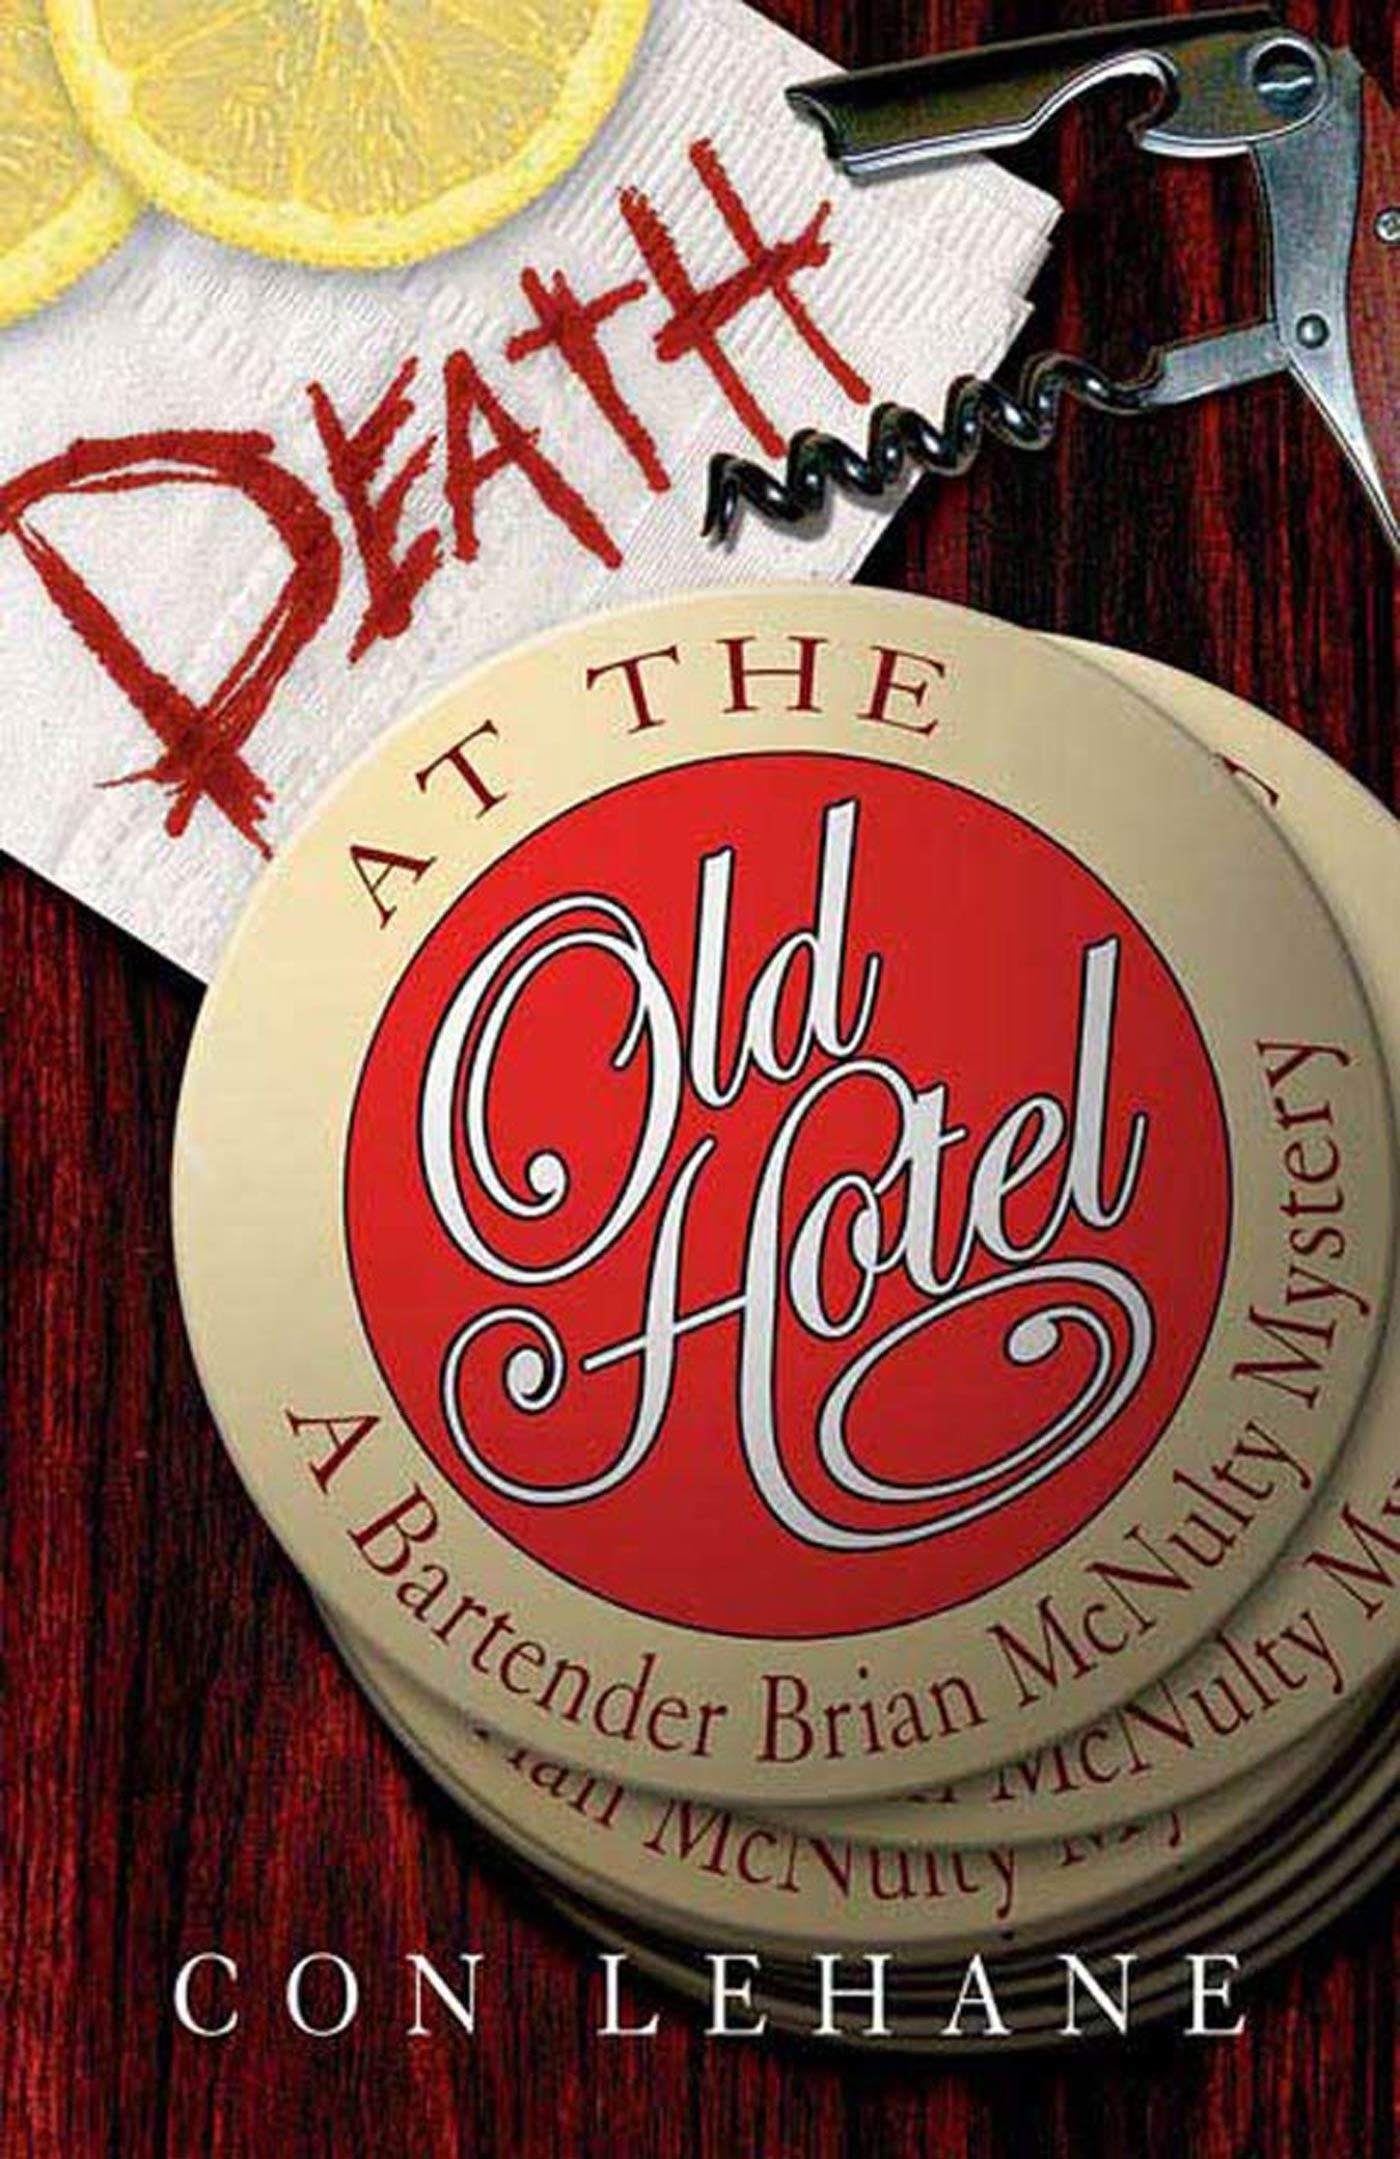 Image of Death at the Old Hotel